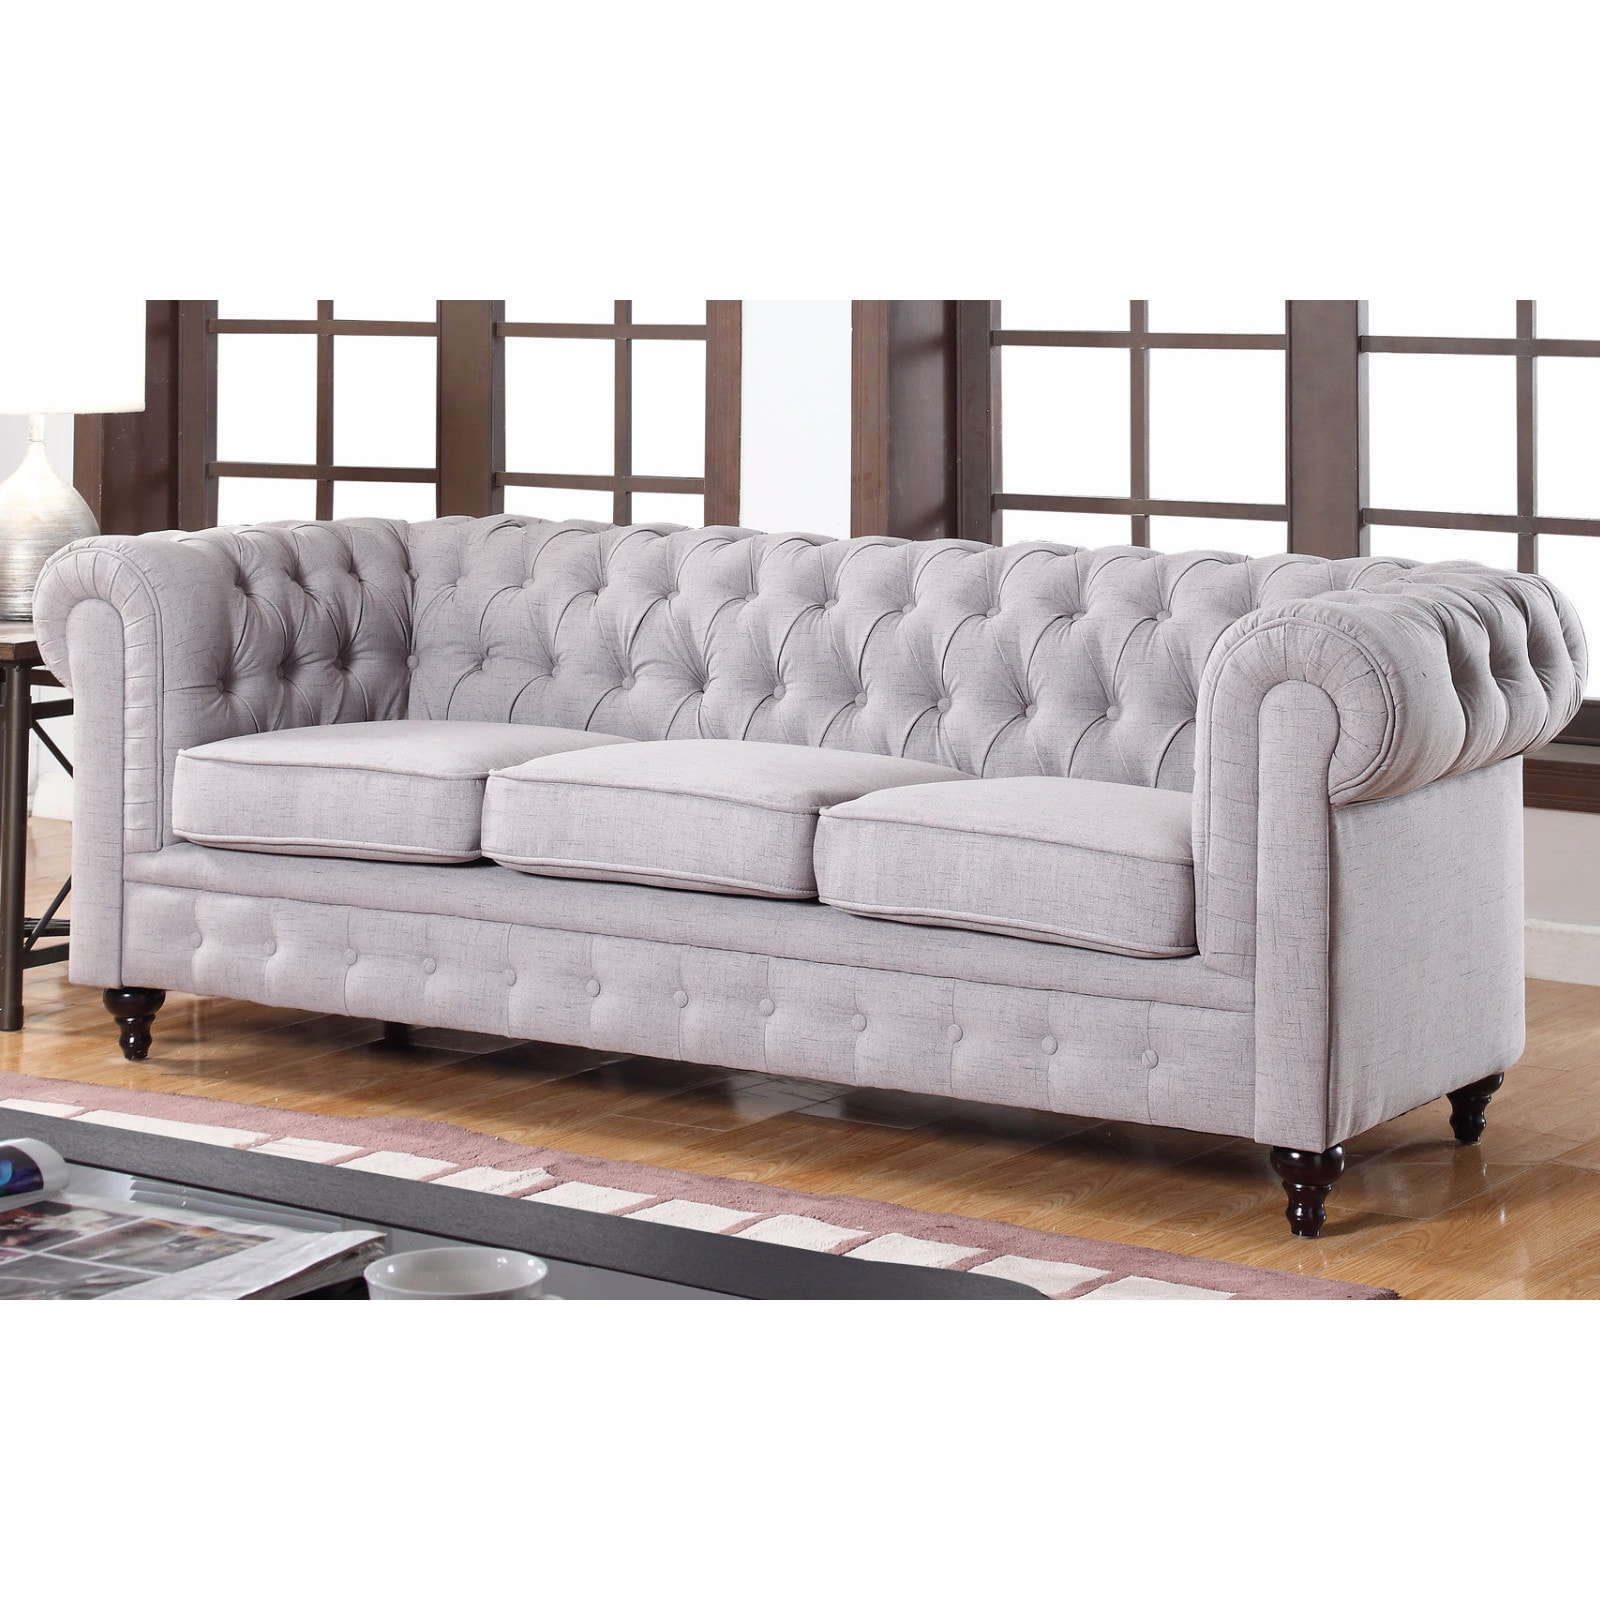 Classic Stone Scroll Arm Tufted Linen Fabric Chesterfield Large Sofa ...